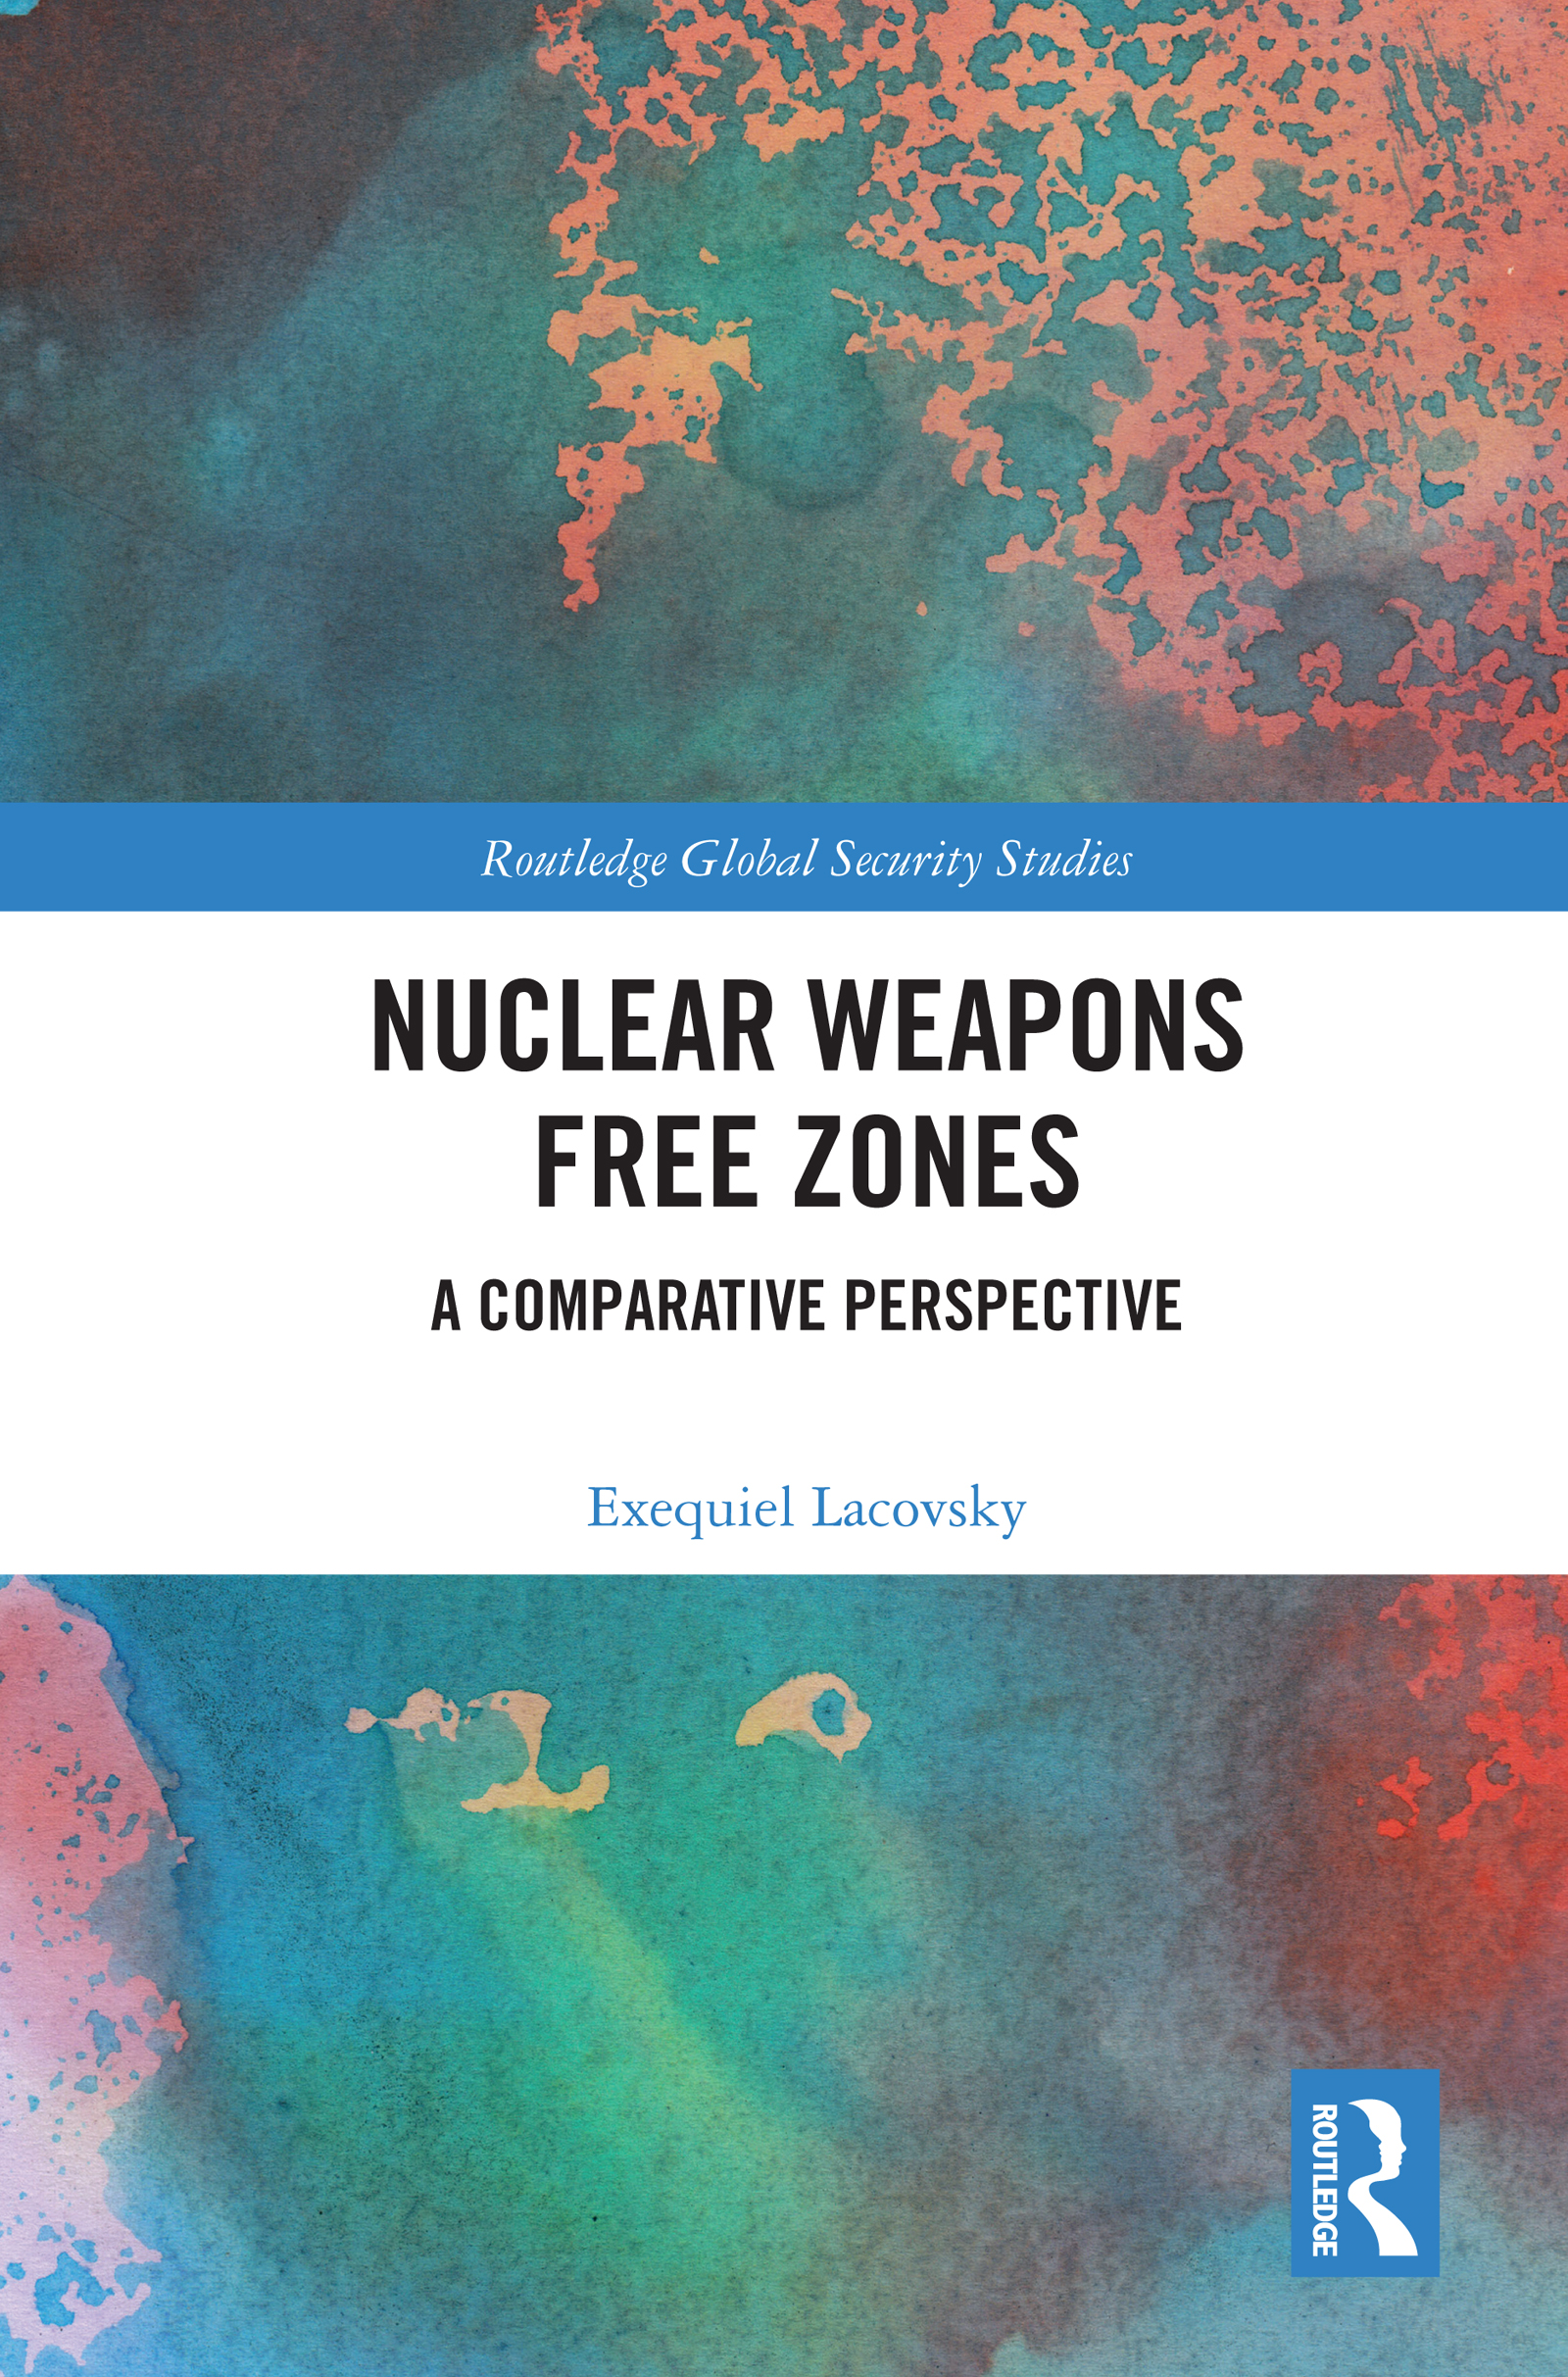 The Southeast Asian Nuclear Weapon Free Zone